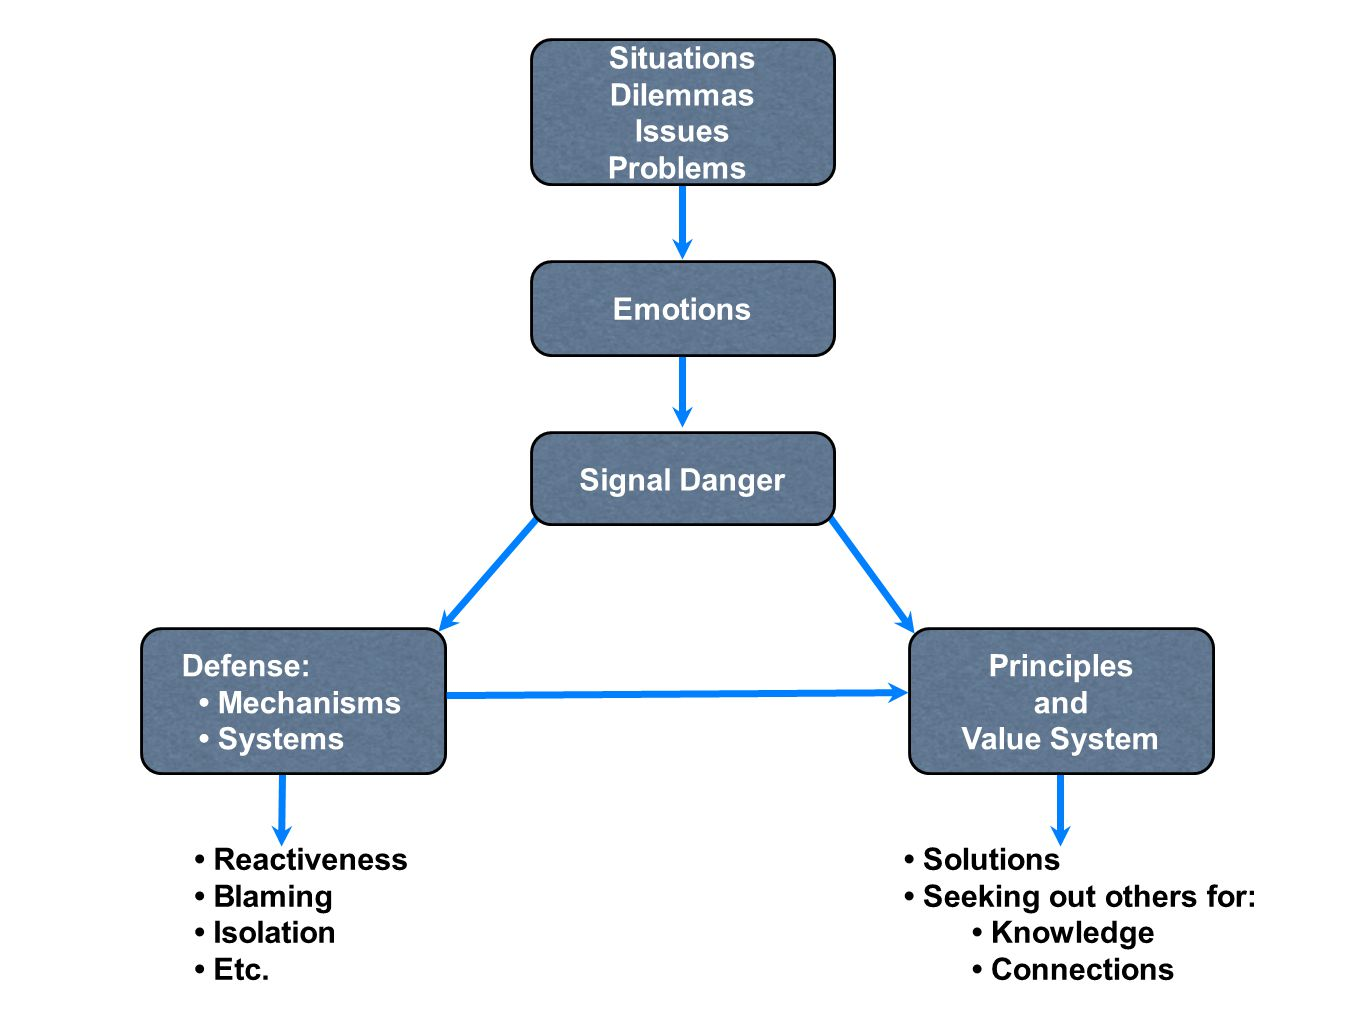 Situations Dilemmas Issues Problems Emotions Signal Danger Defense: Mechanisms Systems Principles and Value System Reactiveness Blaming Isolation Etc.